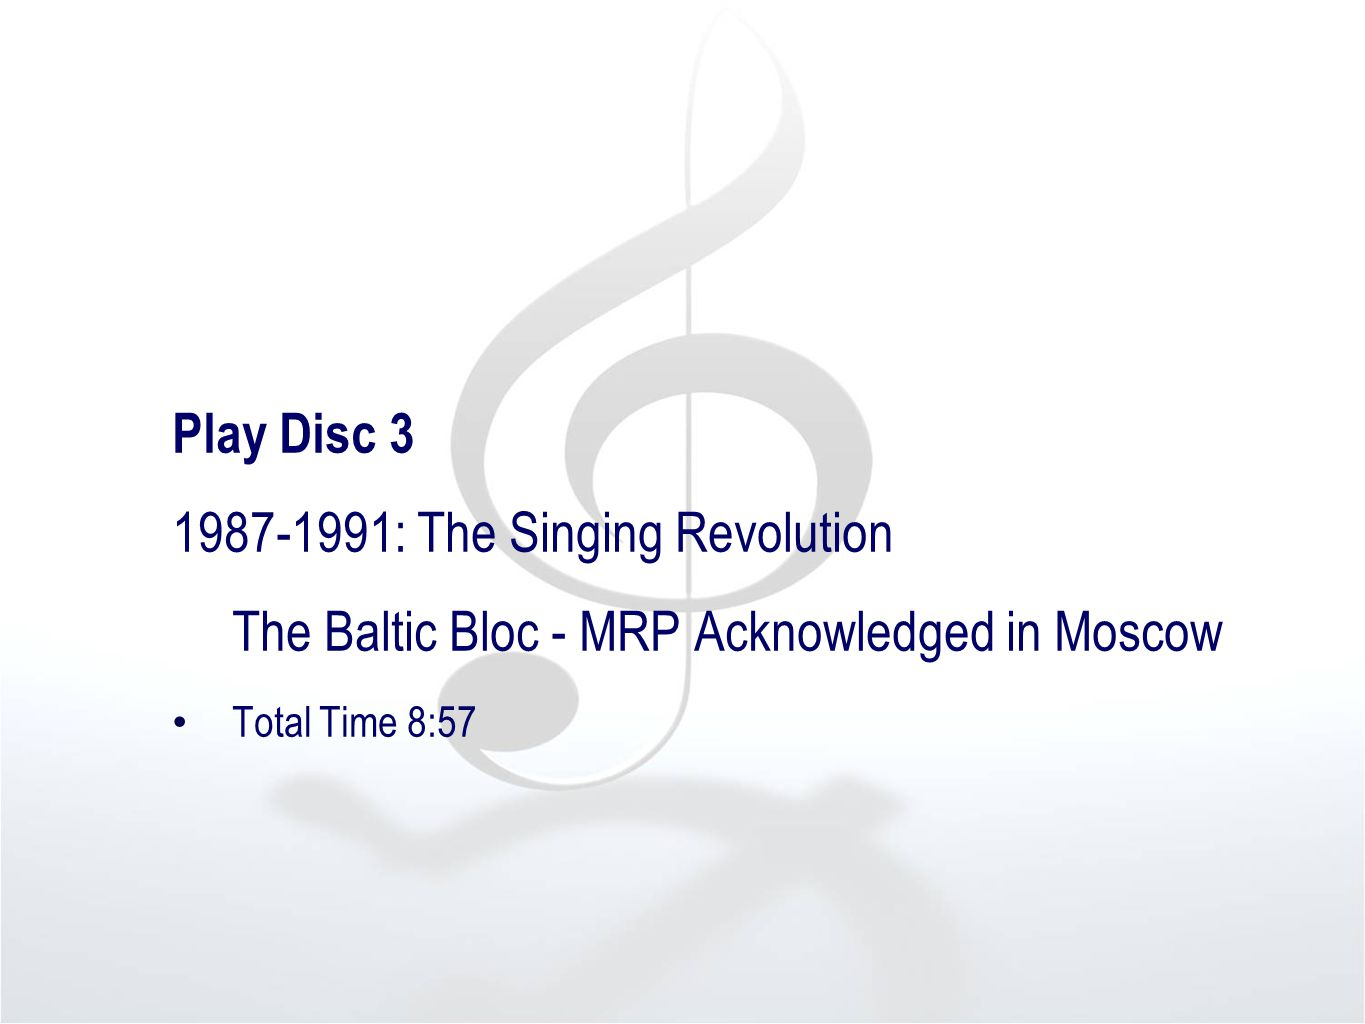 Play Disc 3 1987-1991: The Singing Revolution The Baltic Bloc - MRP Acknowledged in Moscow Total Time 8:57